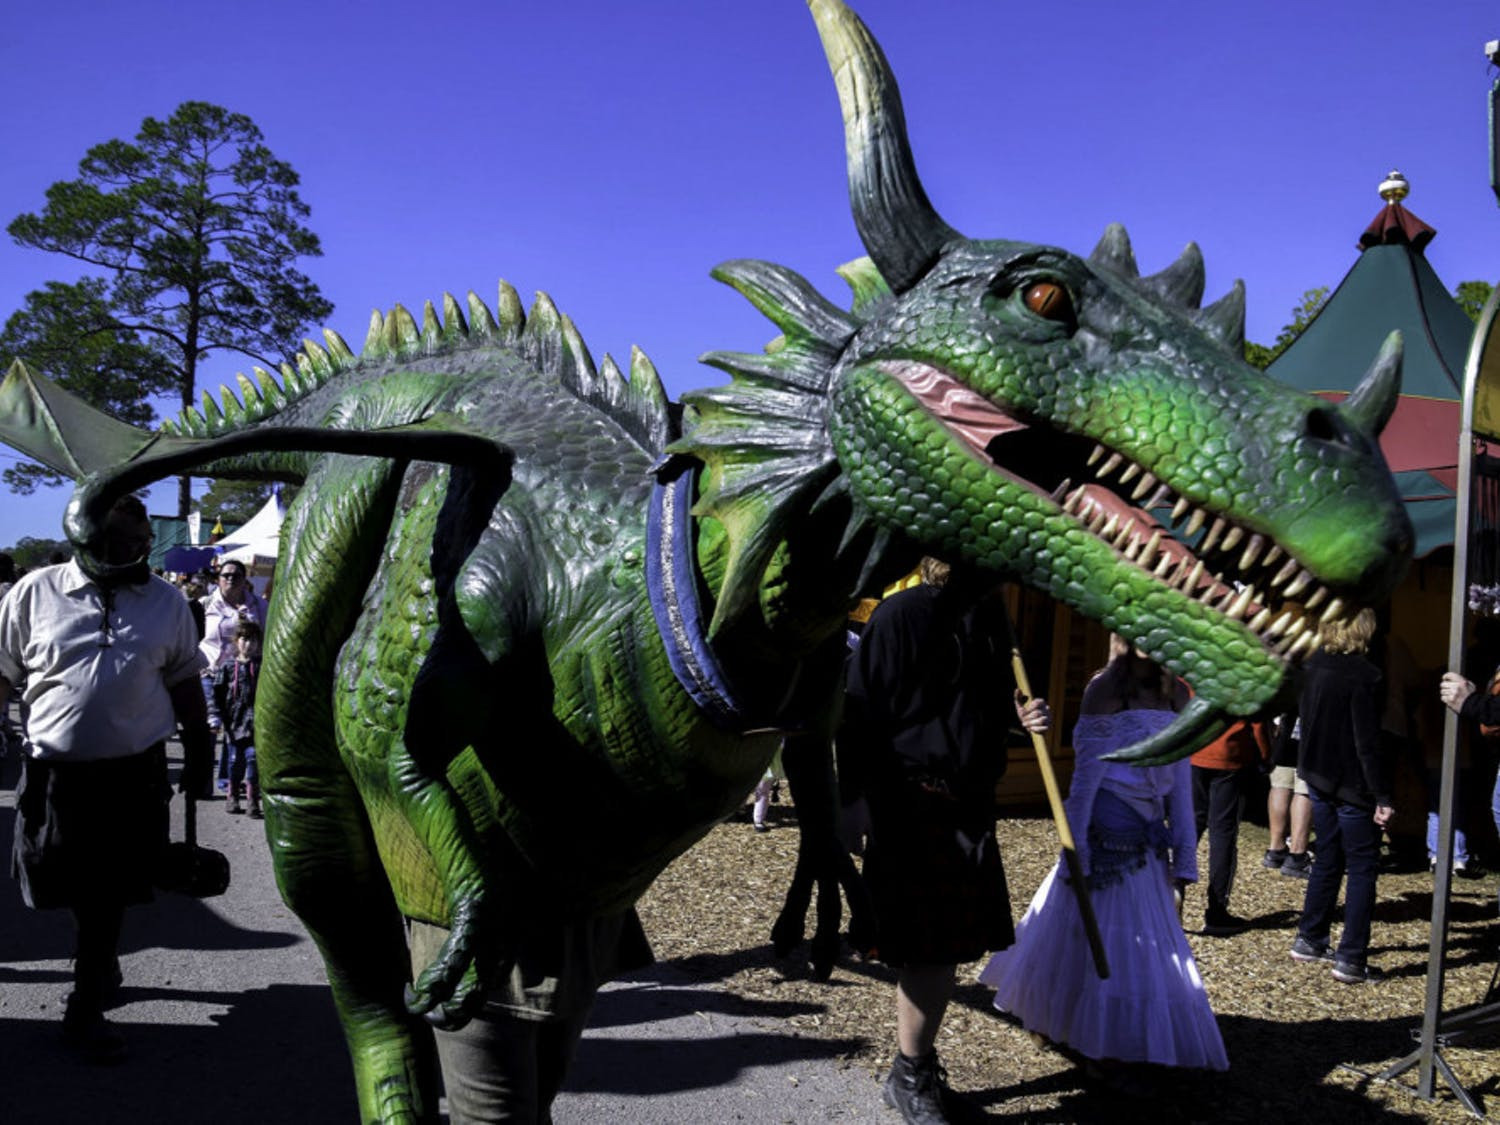 A Hoggetowne Medieval Faire participant dressed as a dragon wanders through the merchant tents.